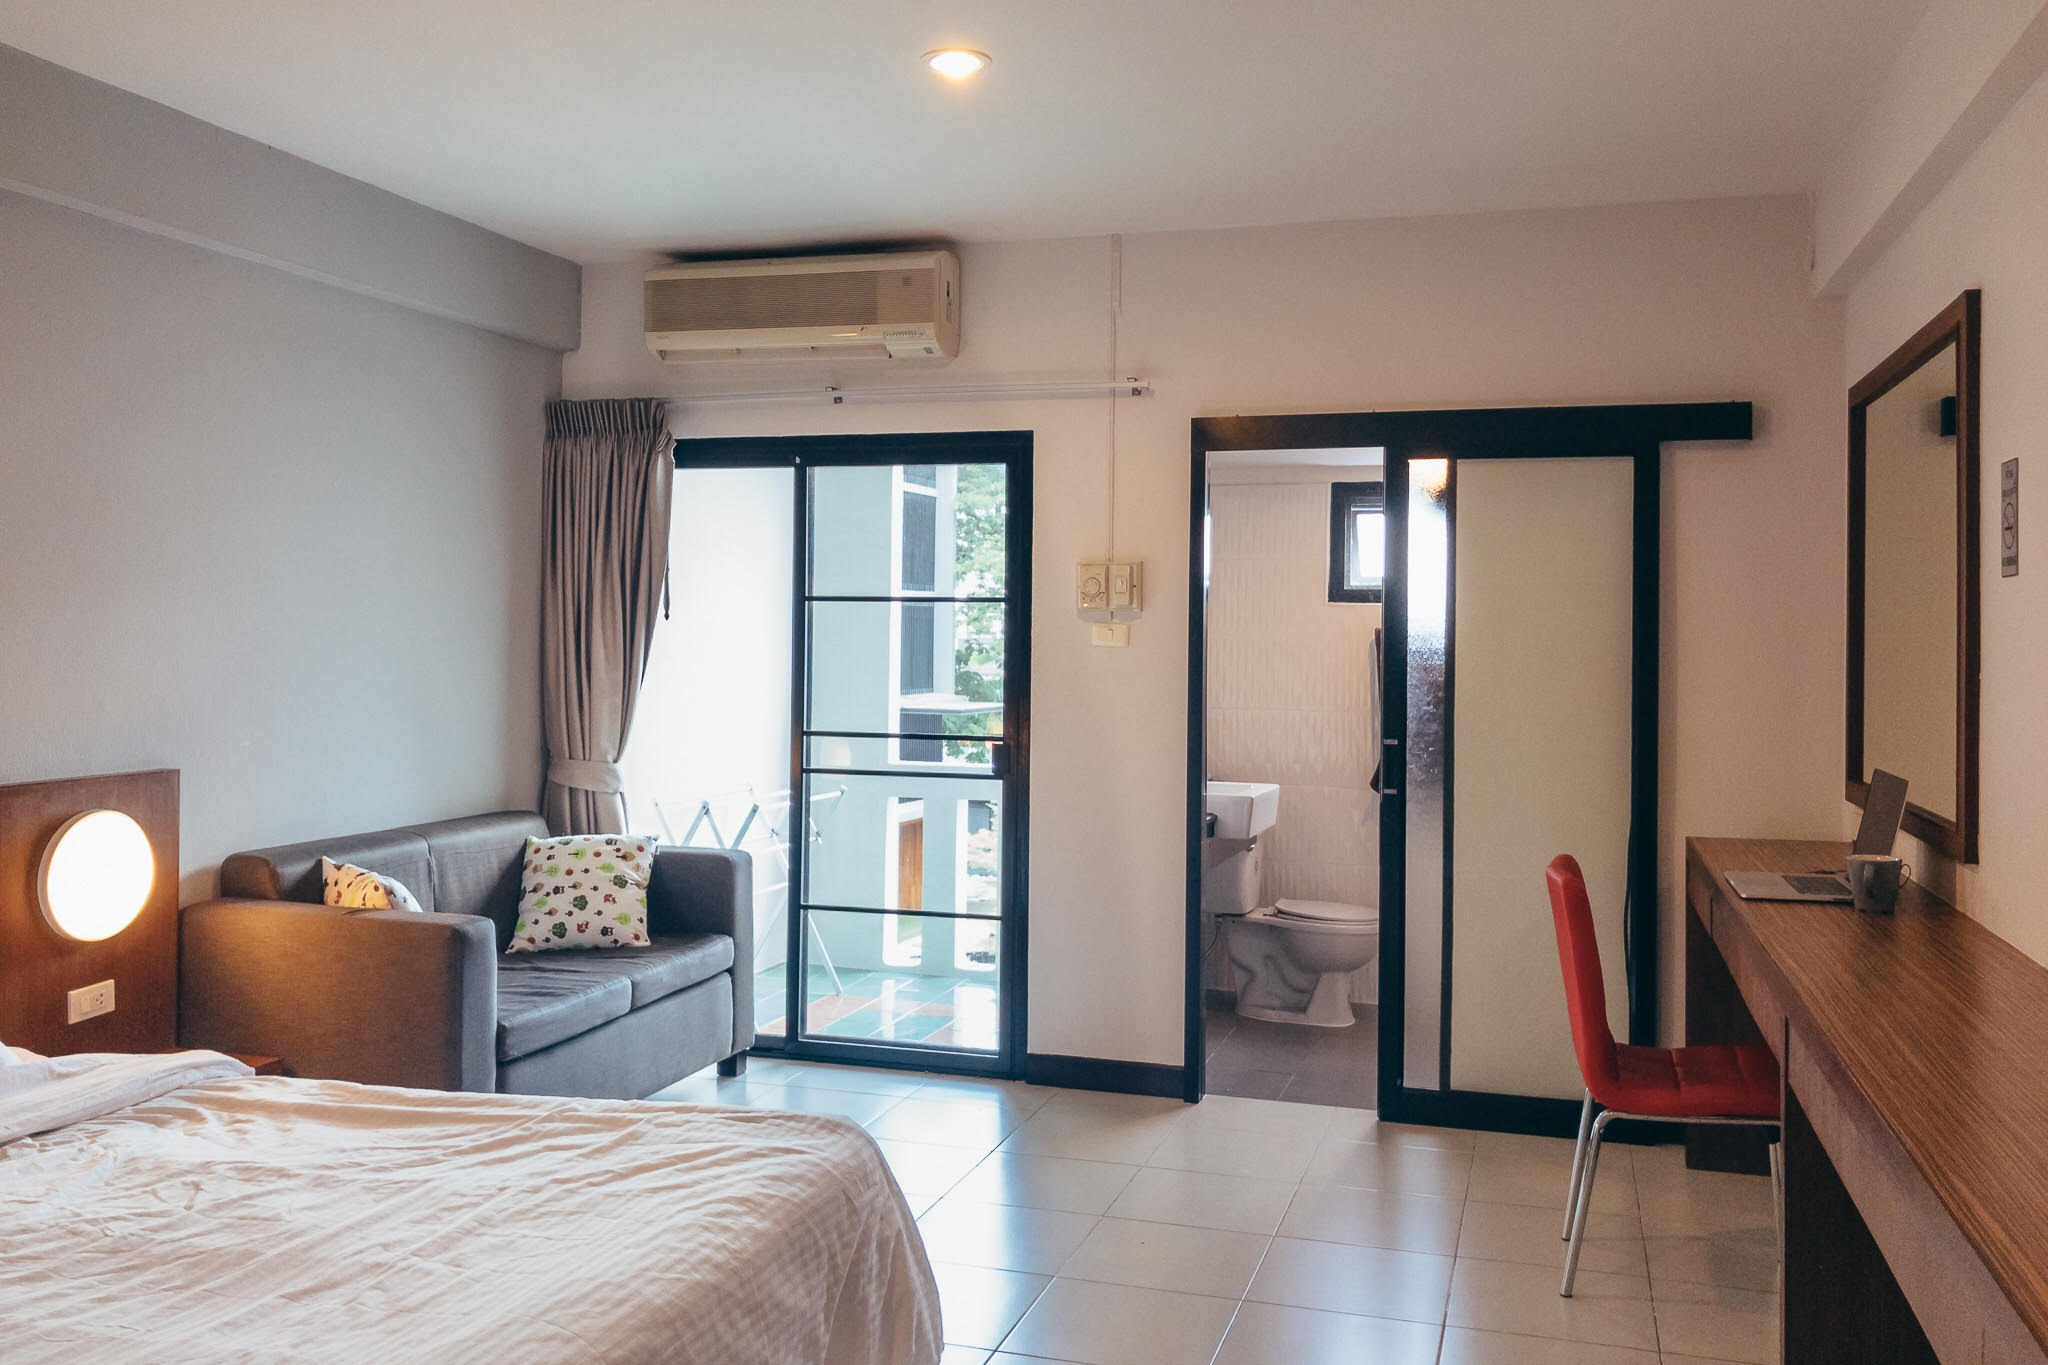 We found our apartment in Chiang Mai!